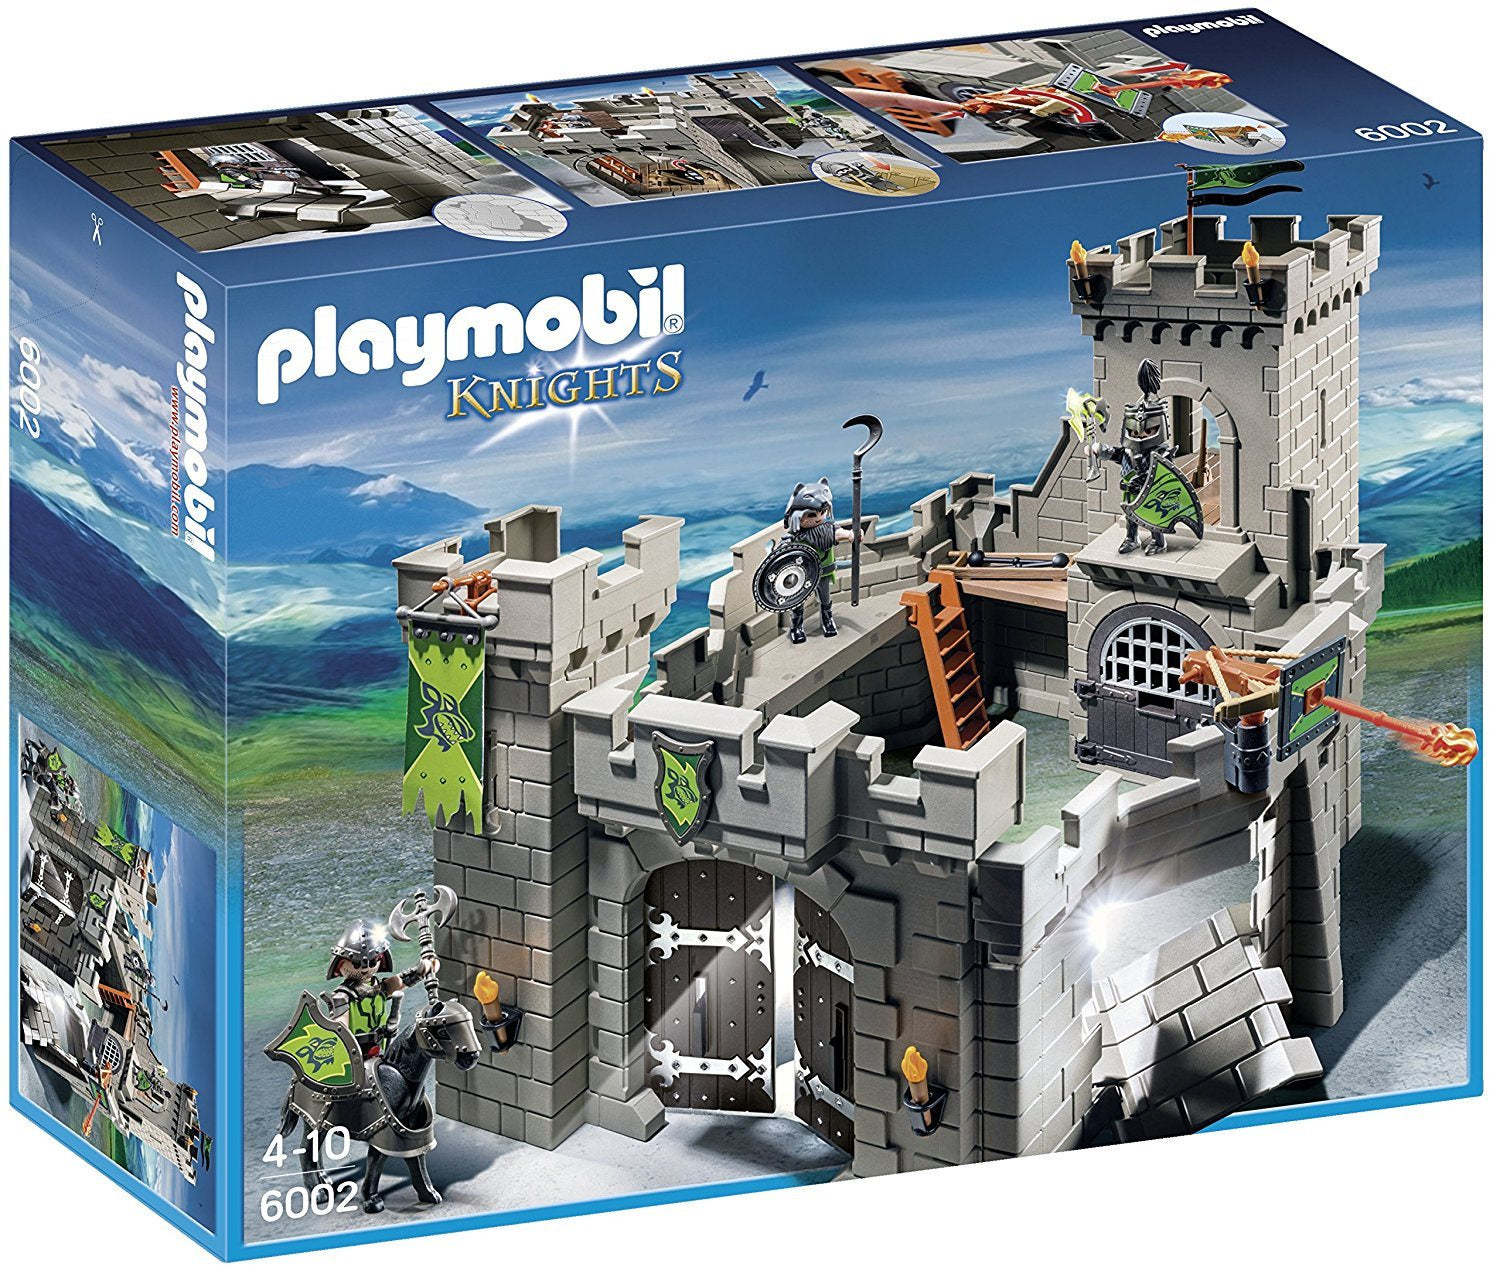 Playmobil Knights 6002 - Wolf Knights Castle